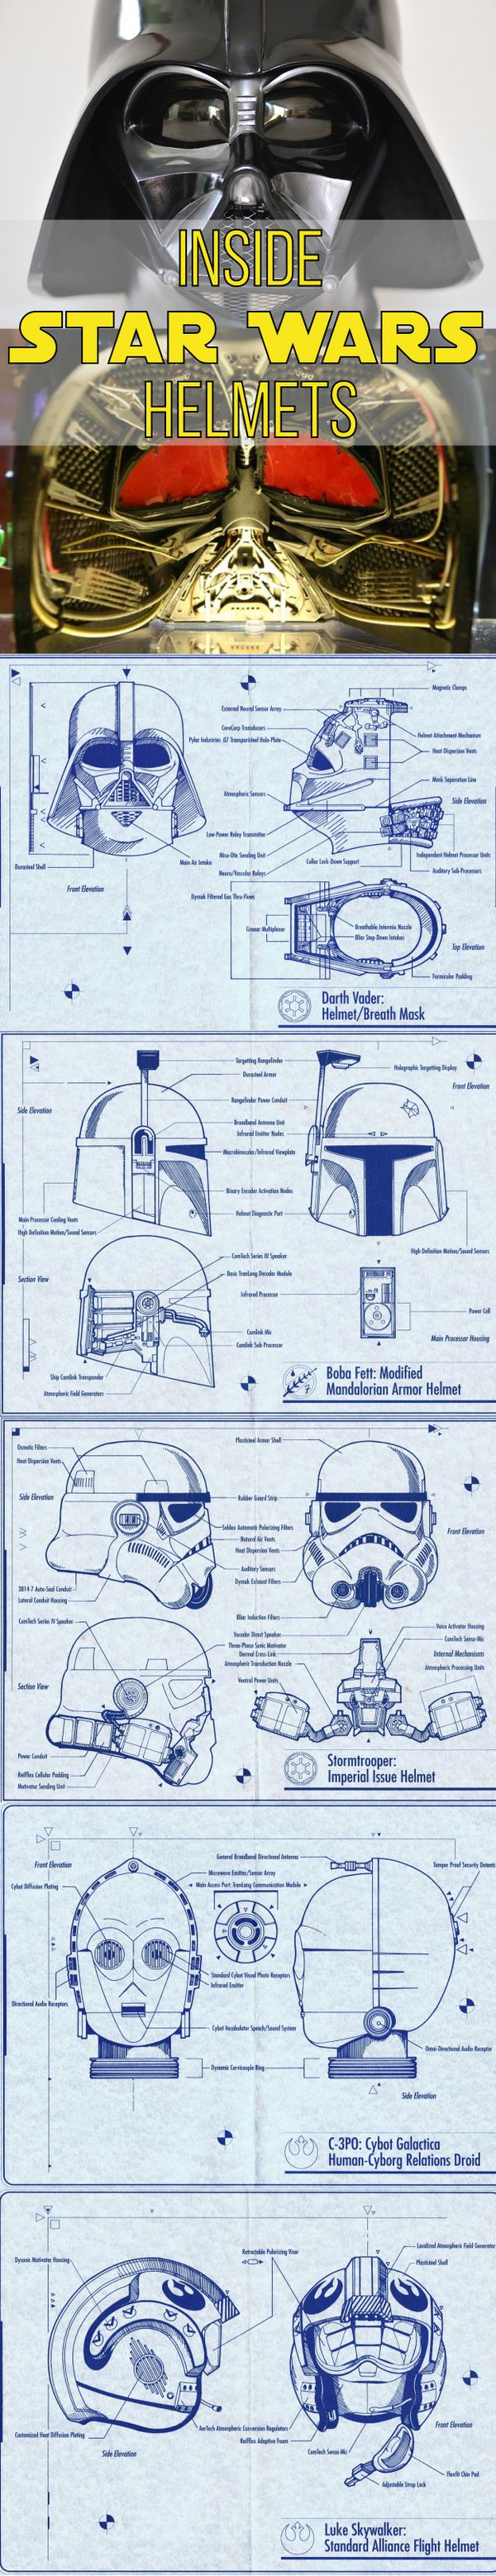 Rare Inside look into Darth Vader's Mask